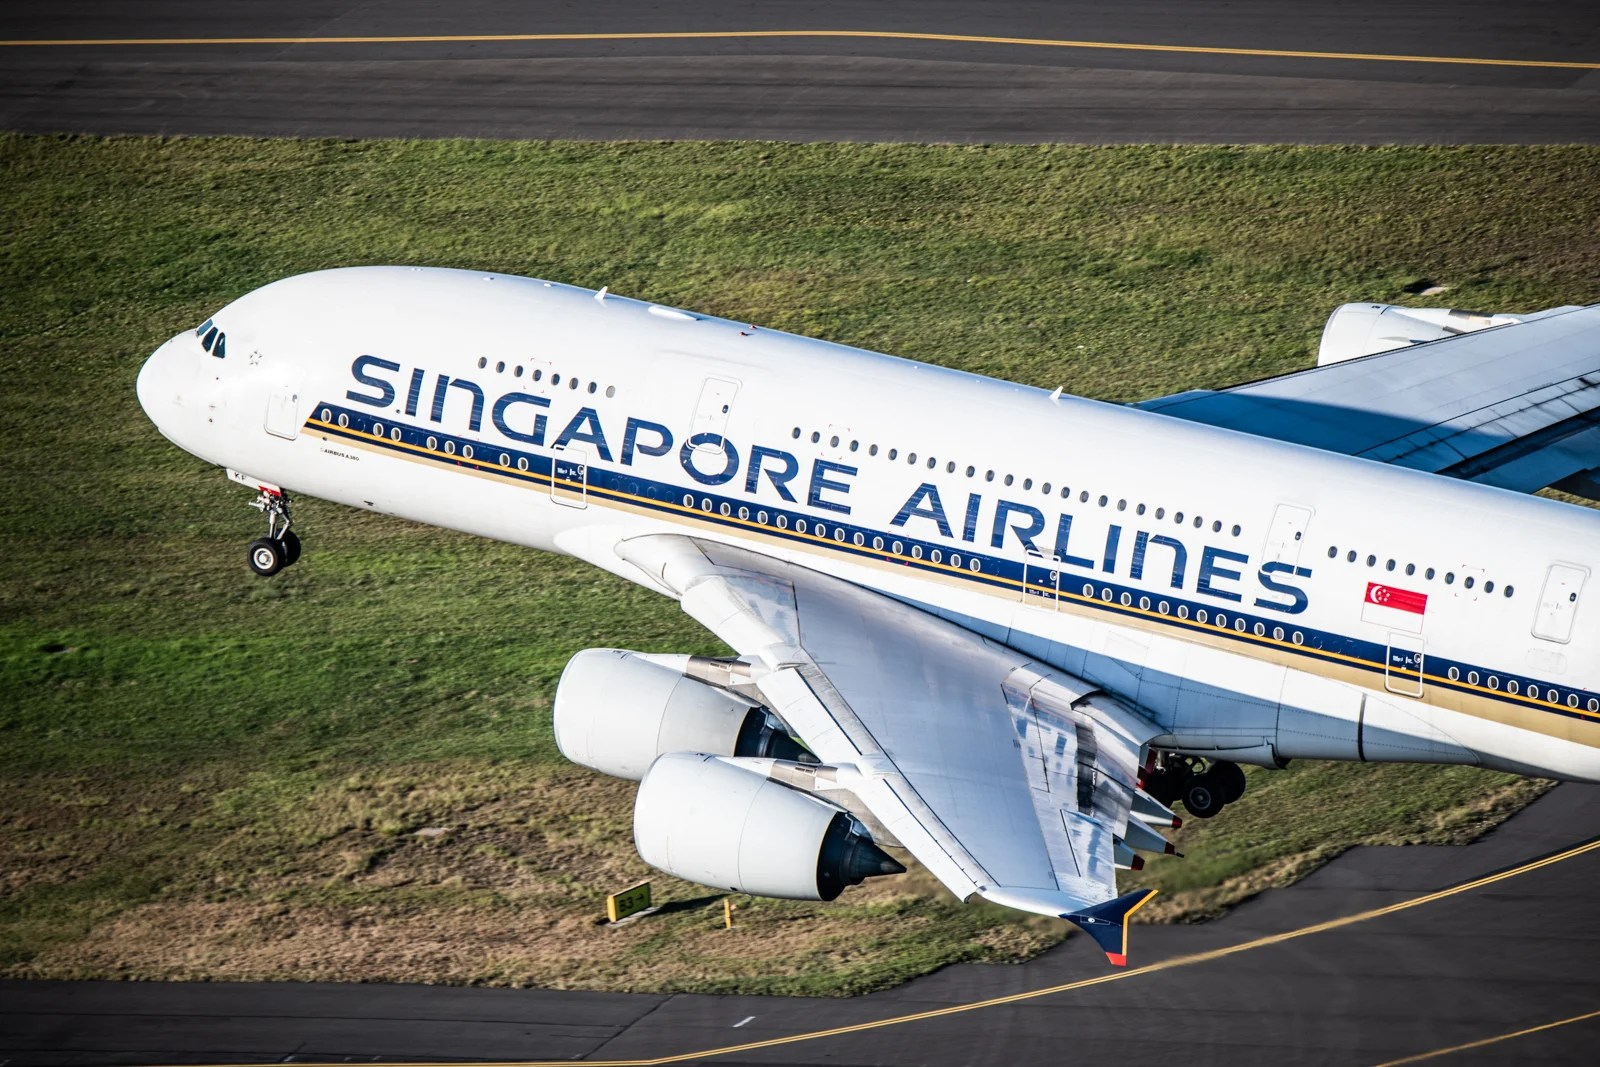 Deal Alert: Fly Singapore Airlines for $490 R/T, Premium Economy for $890